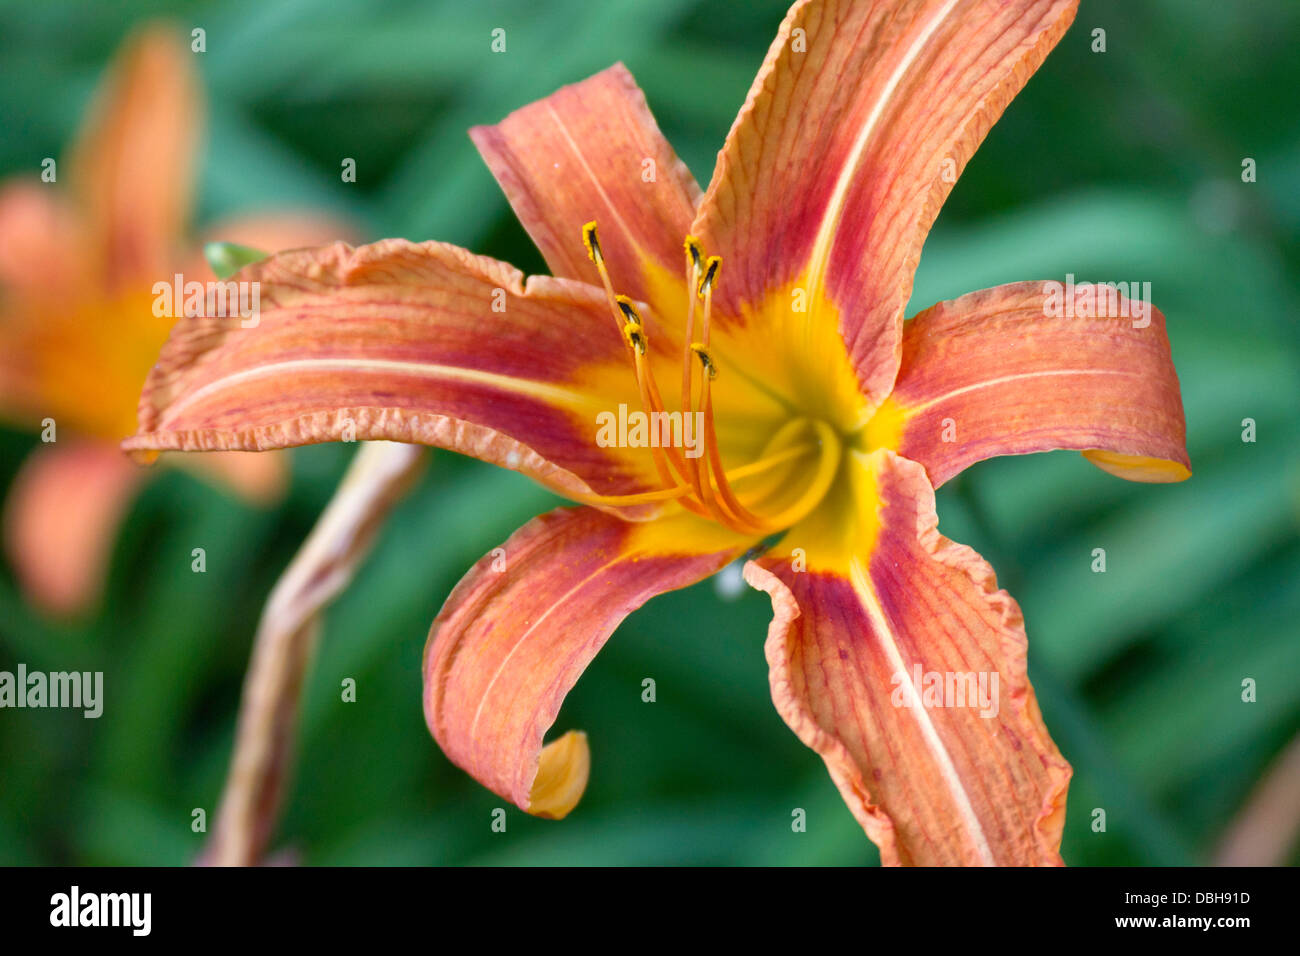 957b1a1209a32 Close up of a brilliantly colored orange lilly flower in full bloom ...